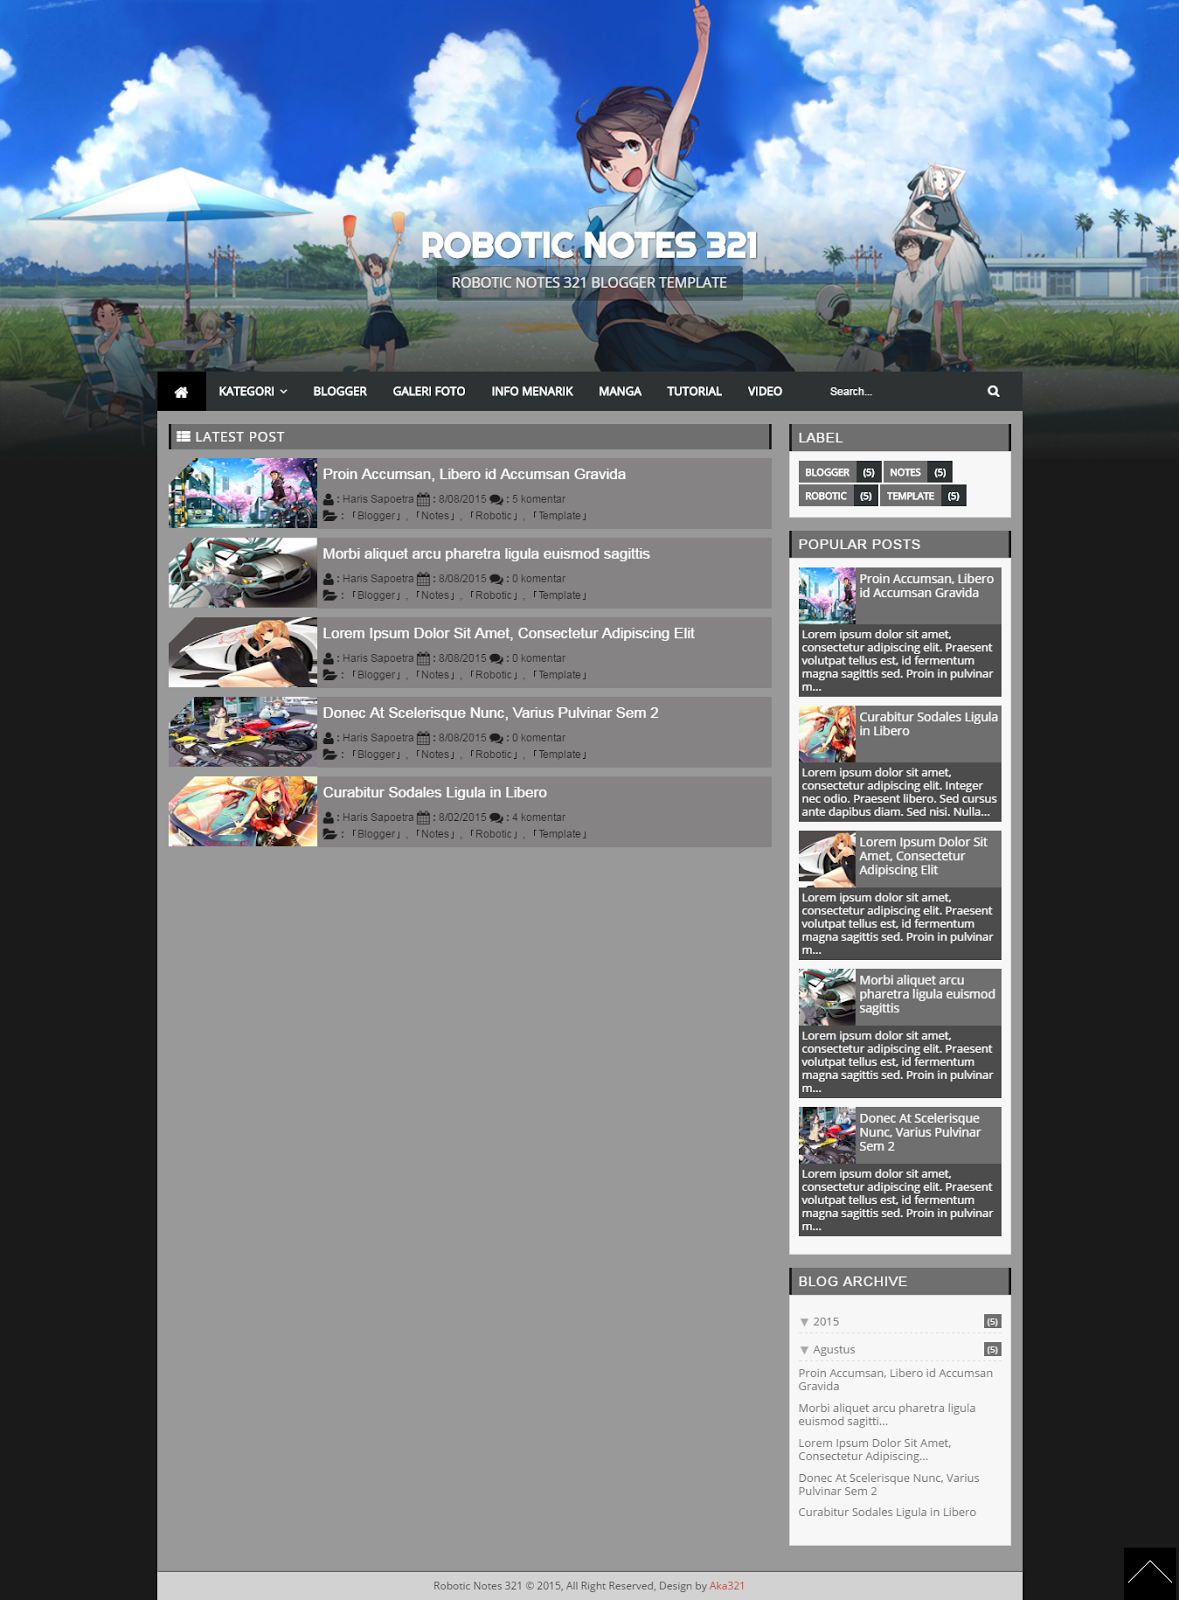 Robotic Notes 321 Blogger Template Preview, Aka321 Blogger Template, Aka321 Blogger Tutorial, Aka321 Robotic Notes 321 Template, Anime Blogger Template